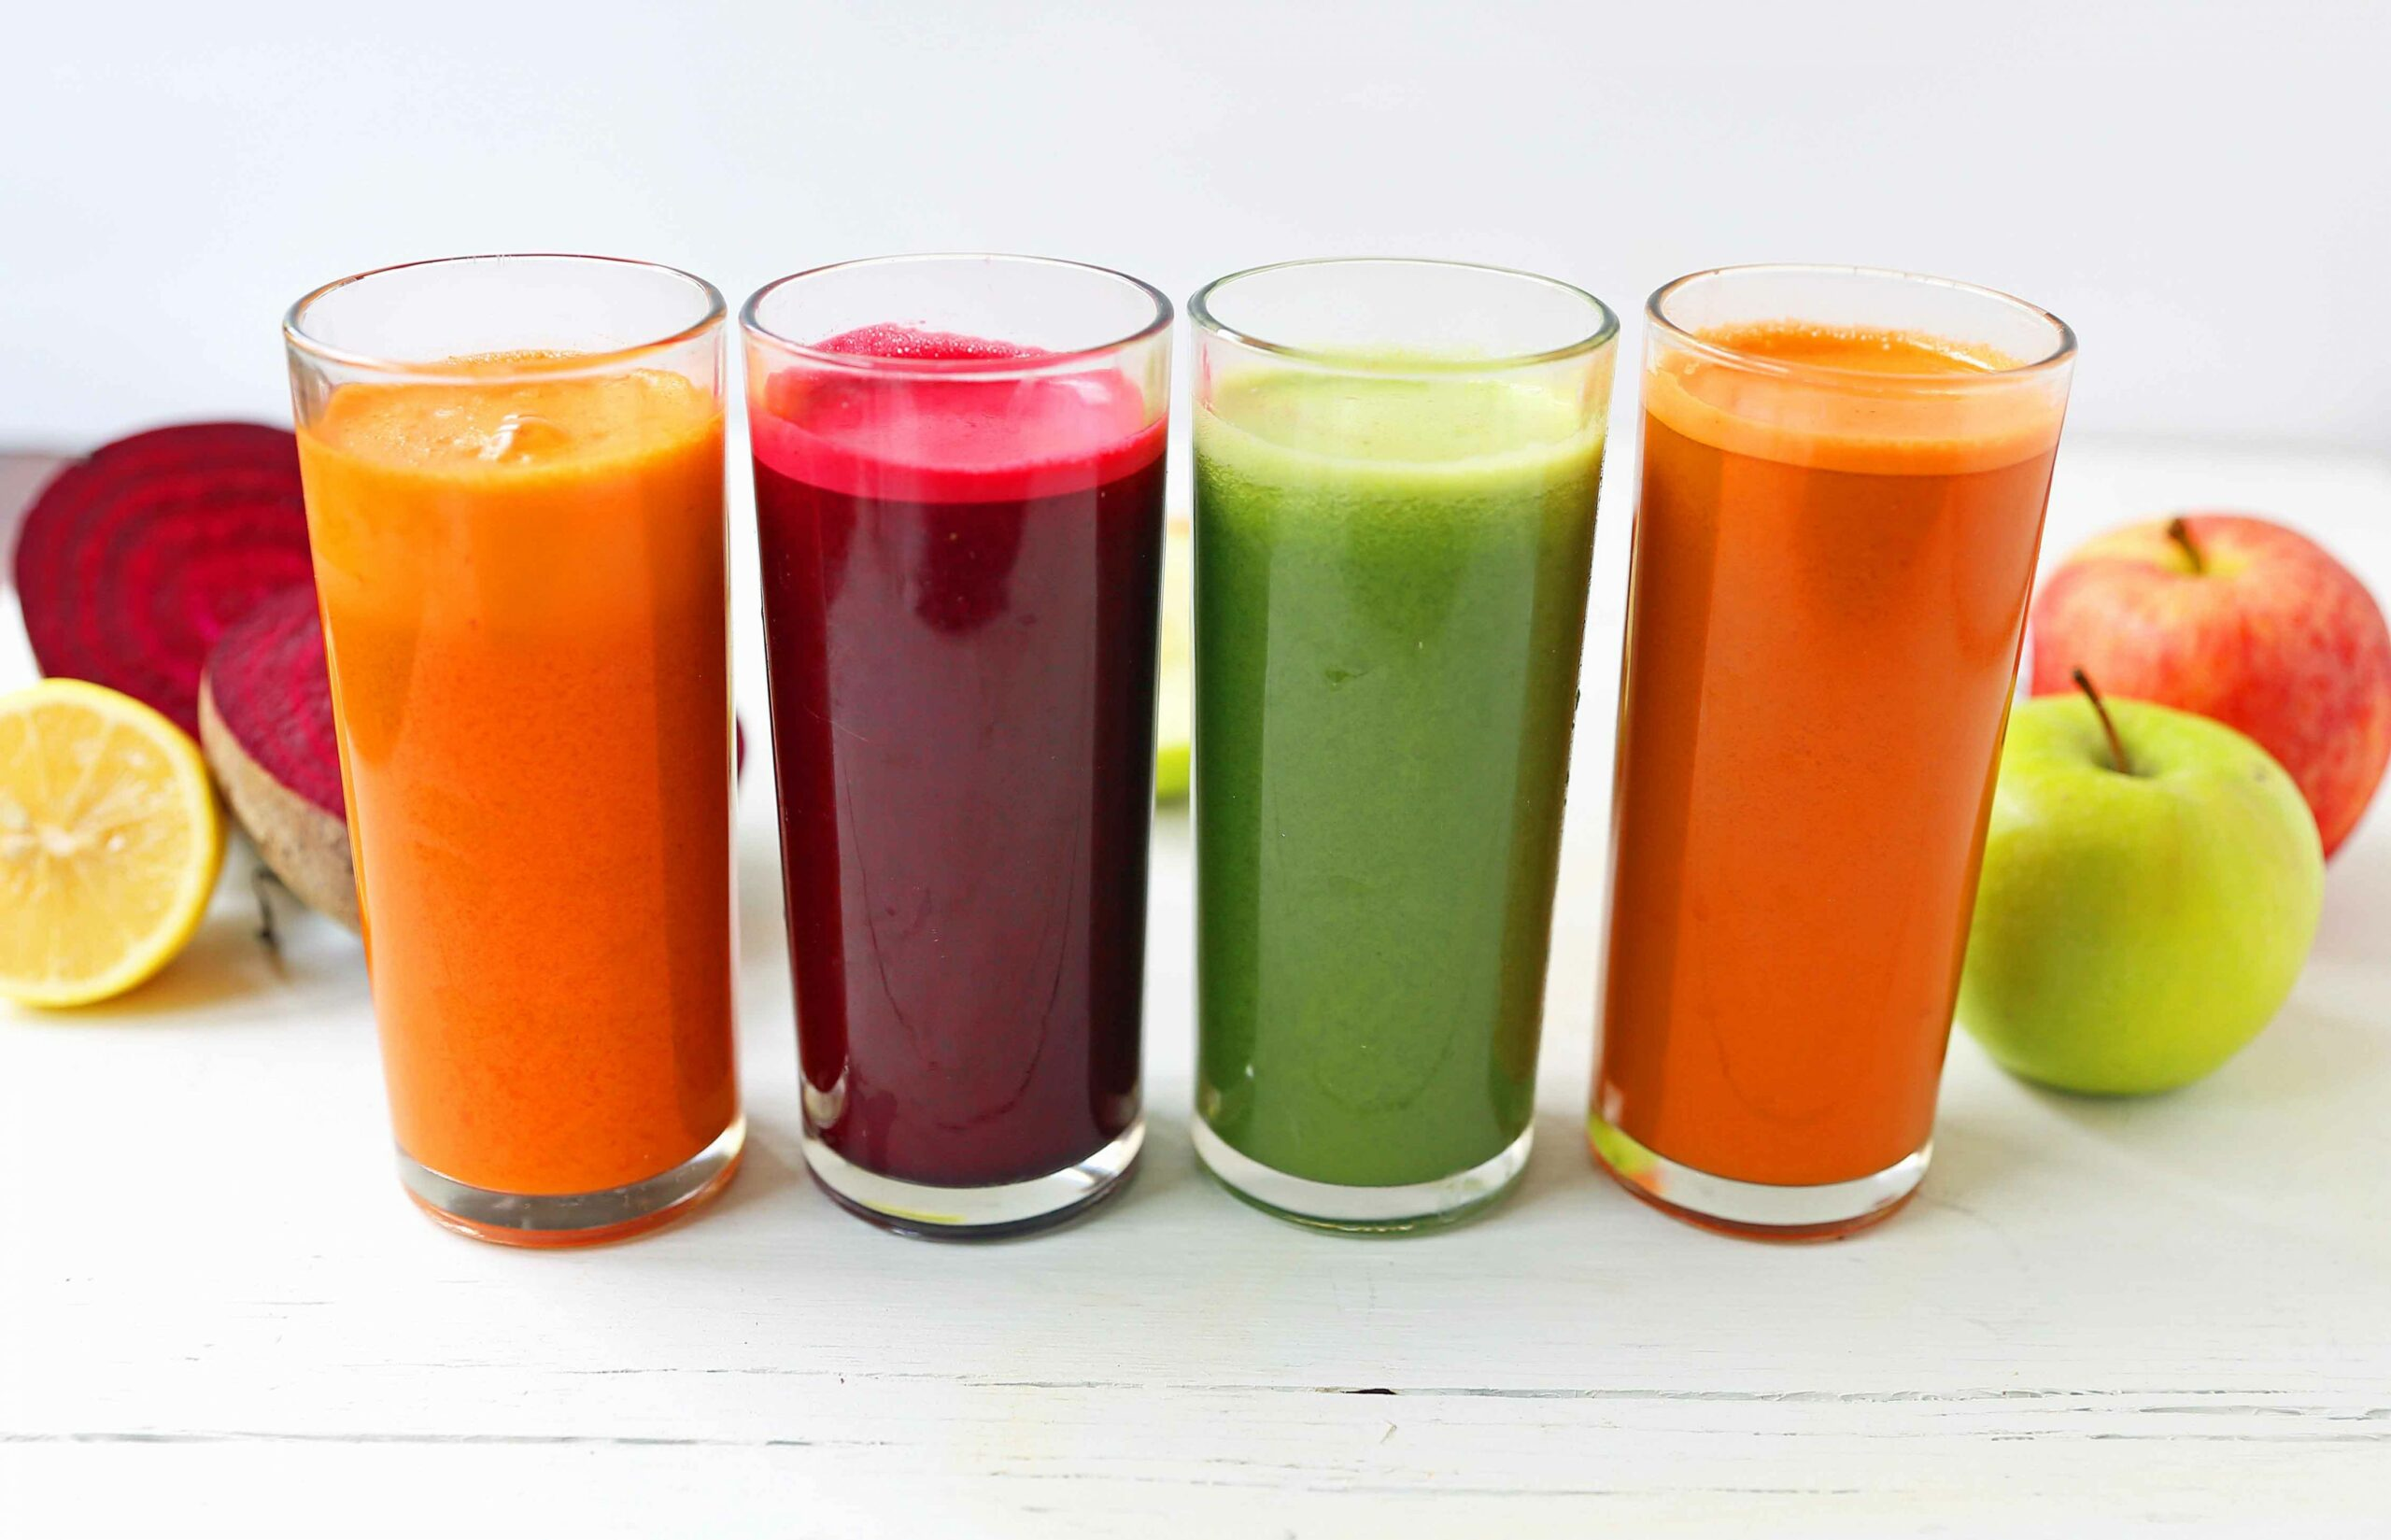 Healthy Juice Cleanse Recipes - Juicing Recipes For Weight Loss Breakfast Lunch And Dinner